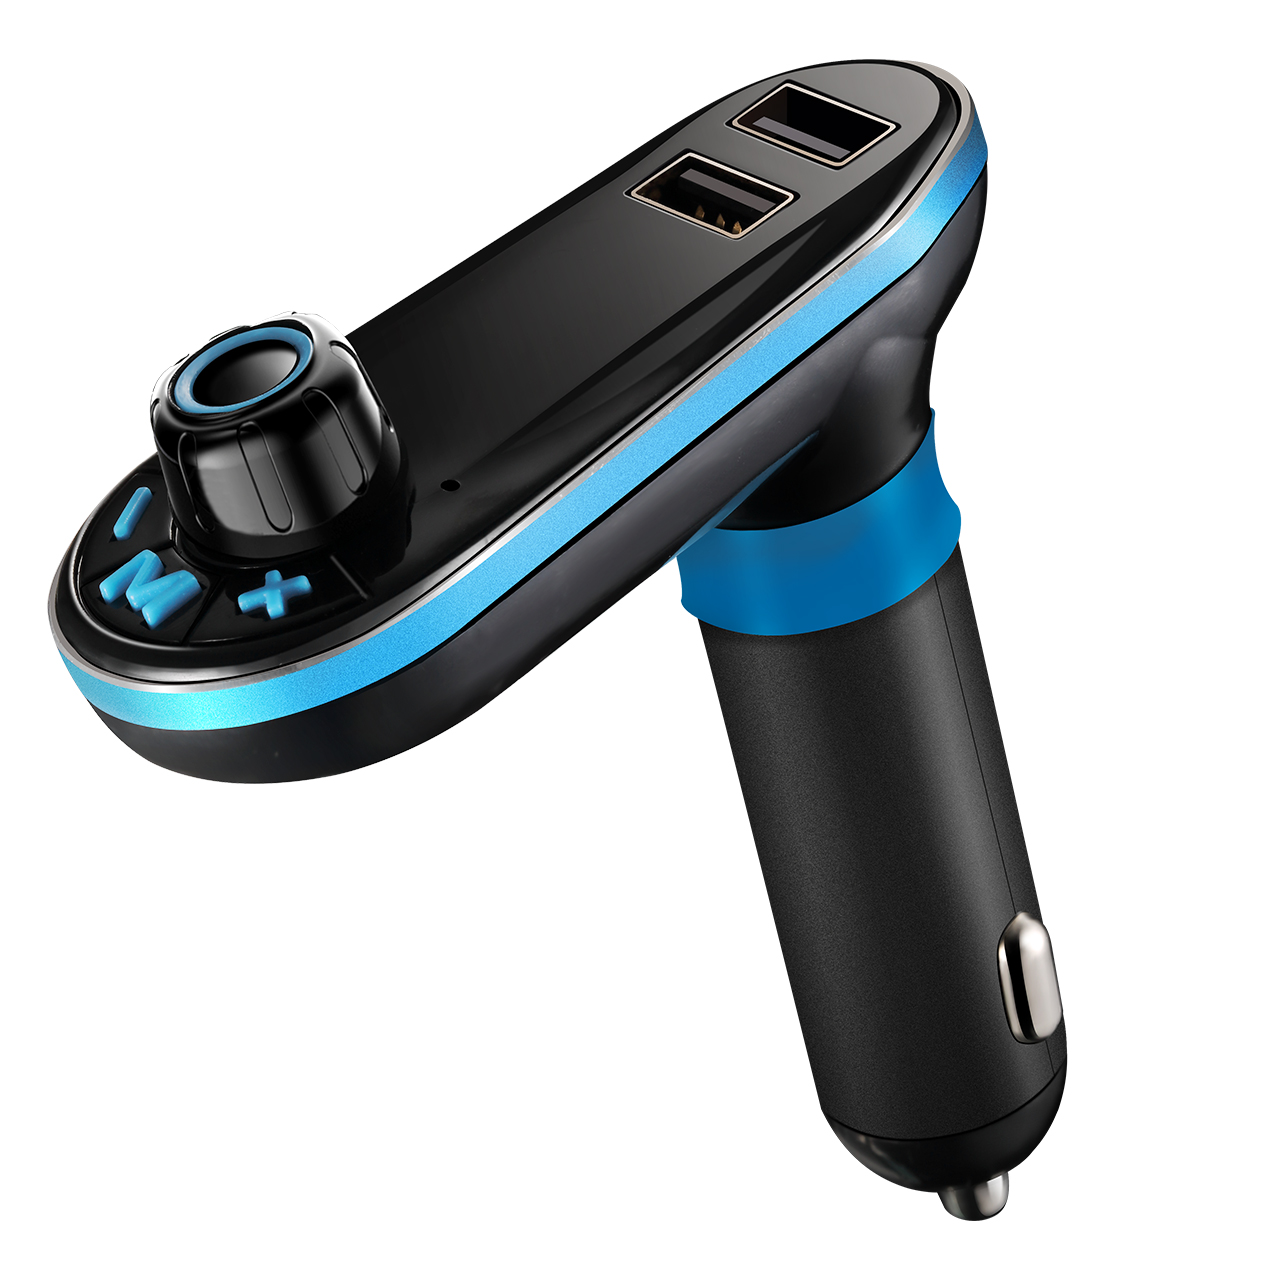 VicTsing Bluetooth FM Transmitter, Hands-free Car Kit Charger, Support TF Card/U-disk for iPod iPhone 6 6S iPad Air/Mini Samsung Galaxy HTC Sony Motorola Smartphones, Supports Siri Function (Blue)